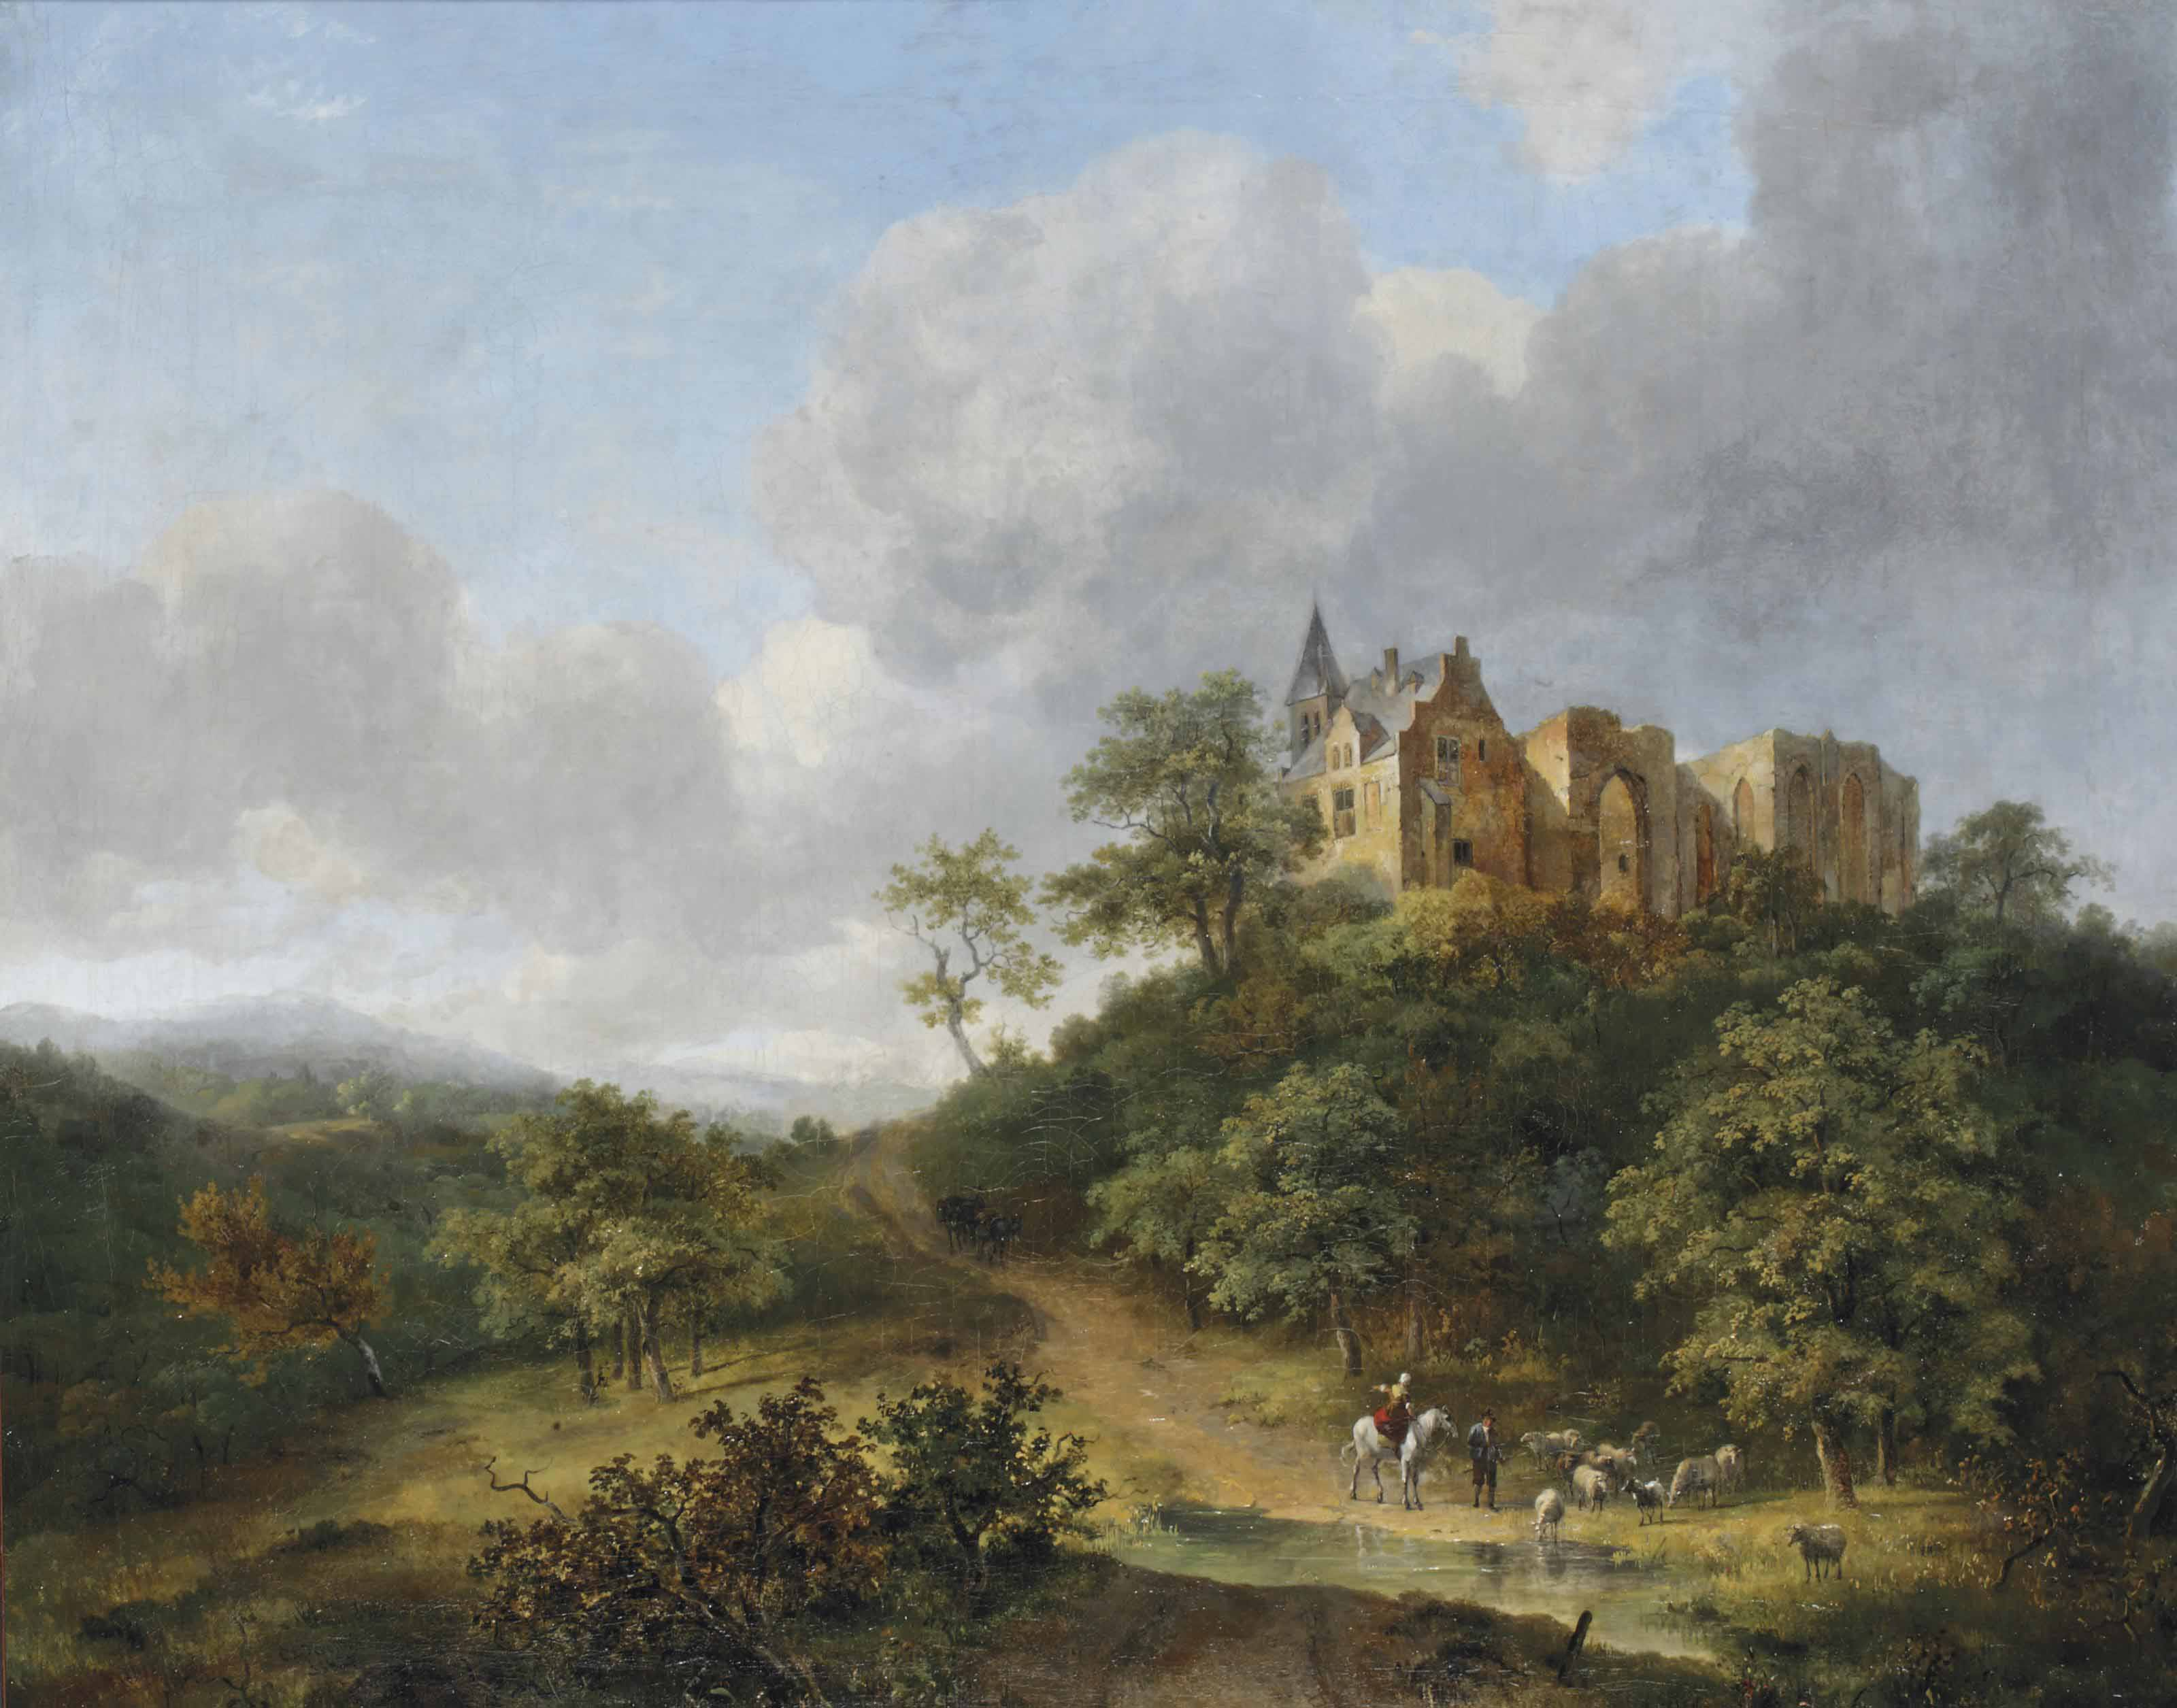 Shepherds watering their cattle near the ruins of the St. Vitus convent on the Elterberg